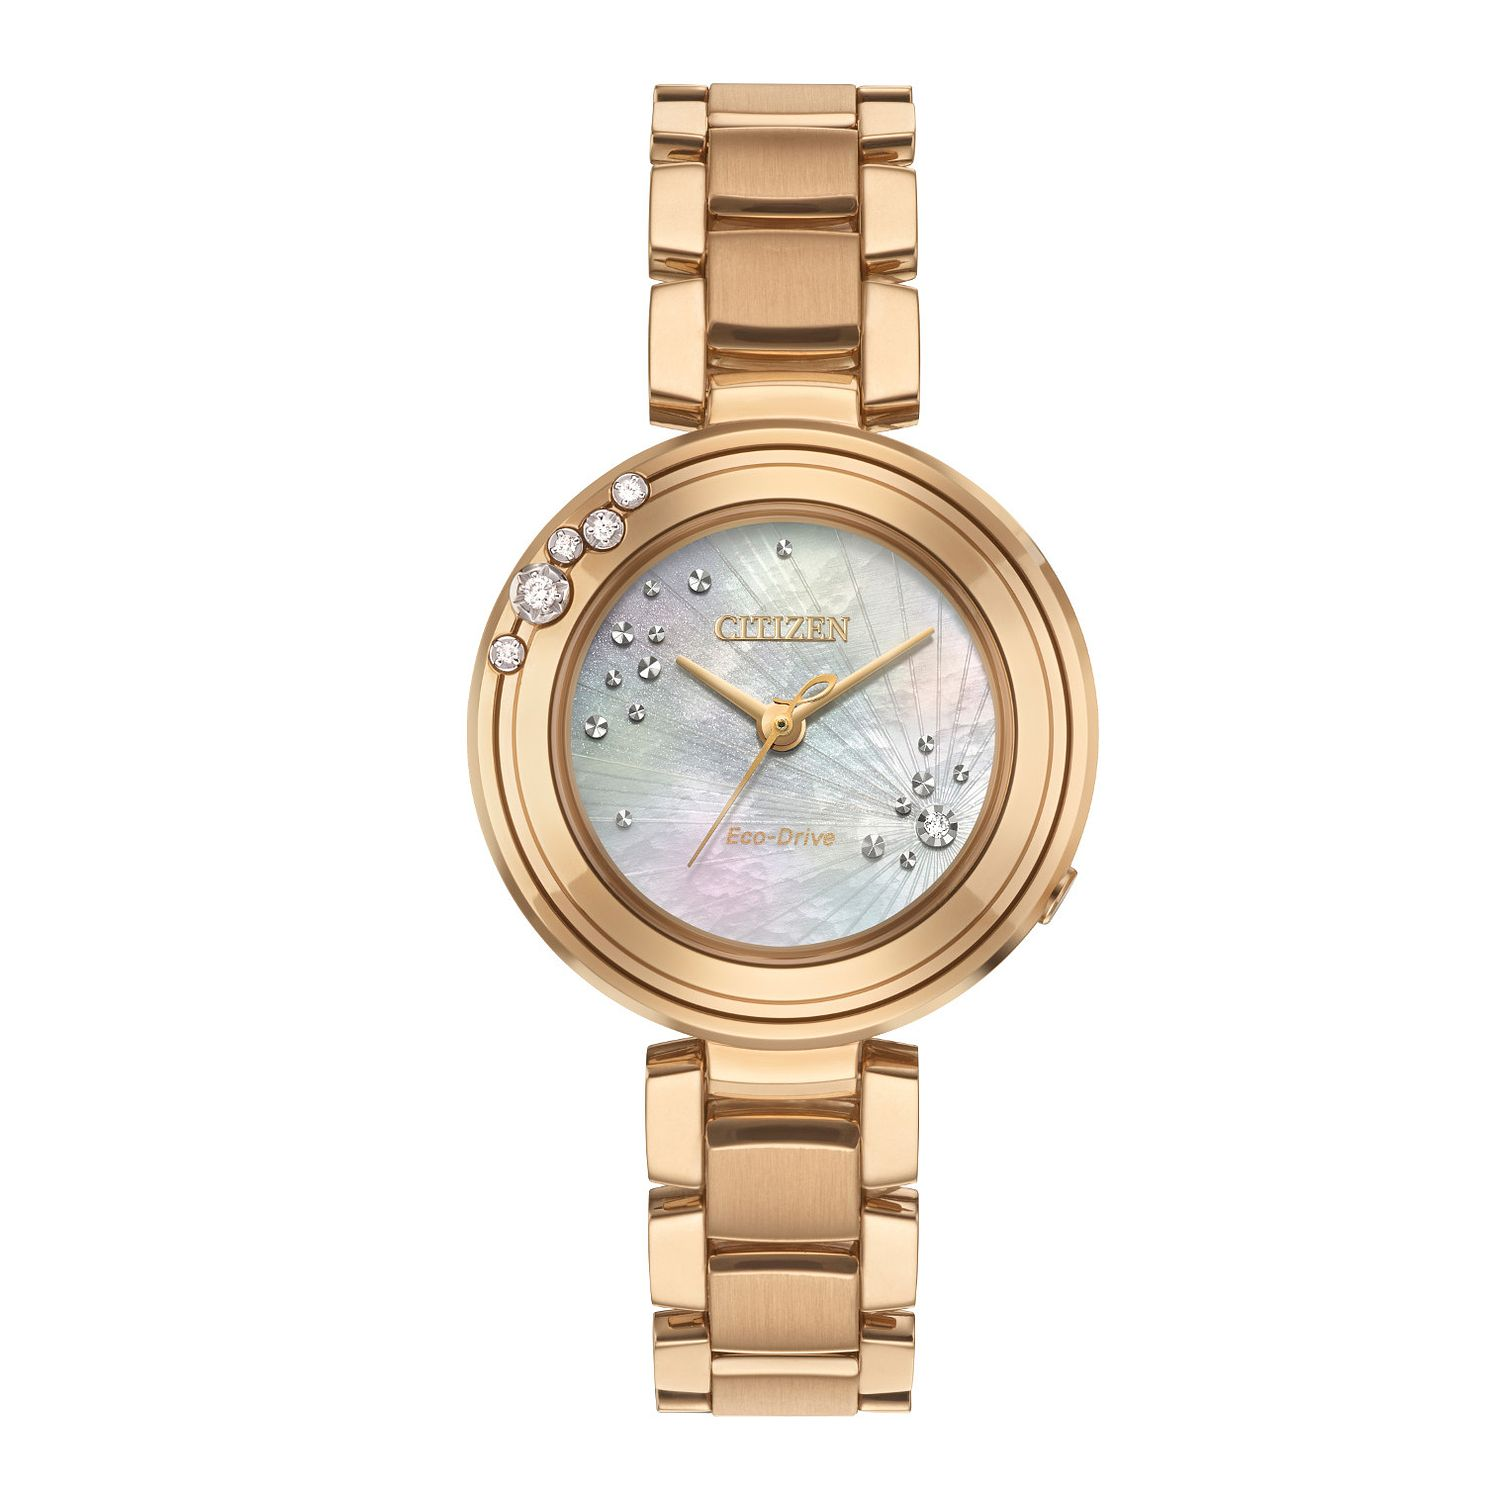 Citizen Carina Diamond Ladies' Rose Gold Tone Bracelet Watch - Product number 8061106